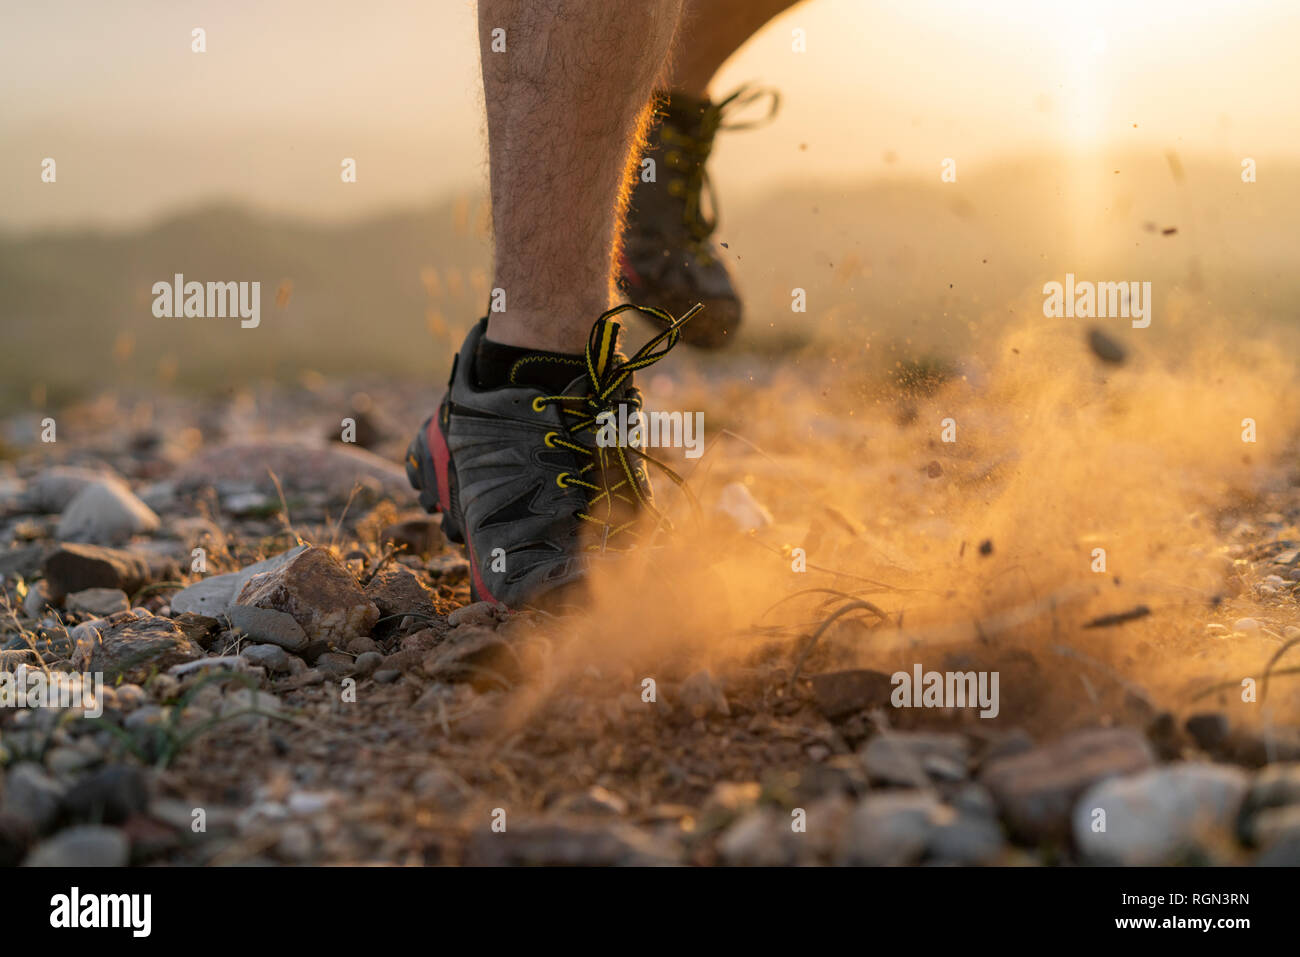 Close-up of feet of a trail runner - Stock Image